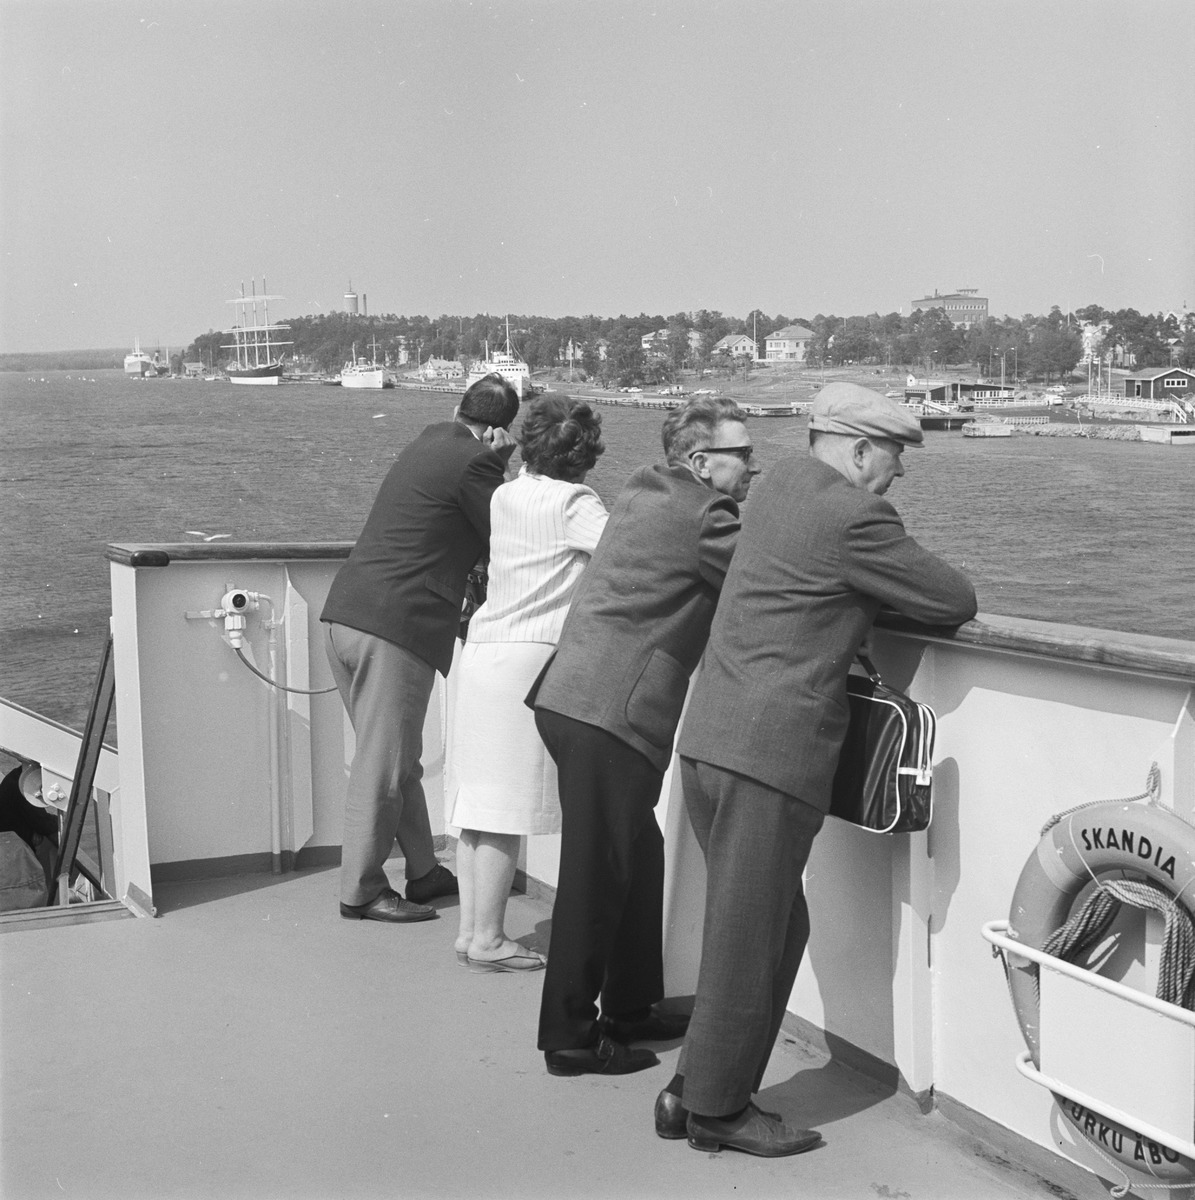 Travellers on the outer deck of m/s Skandia.